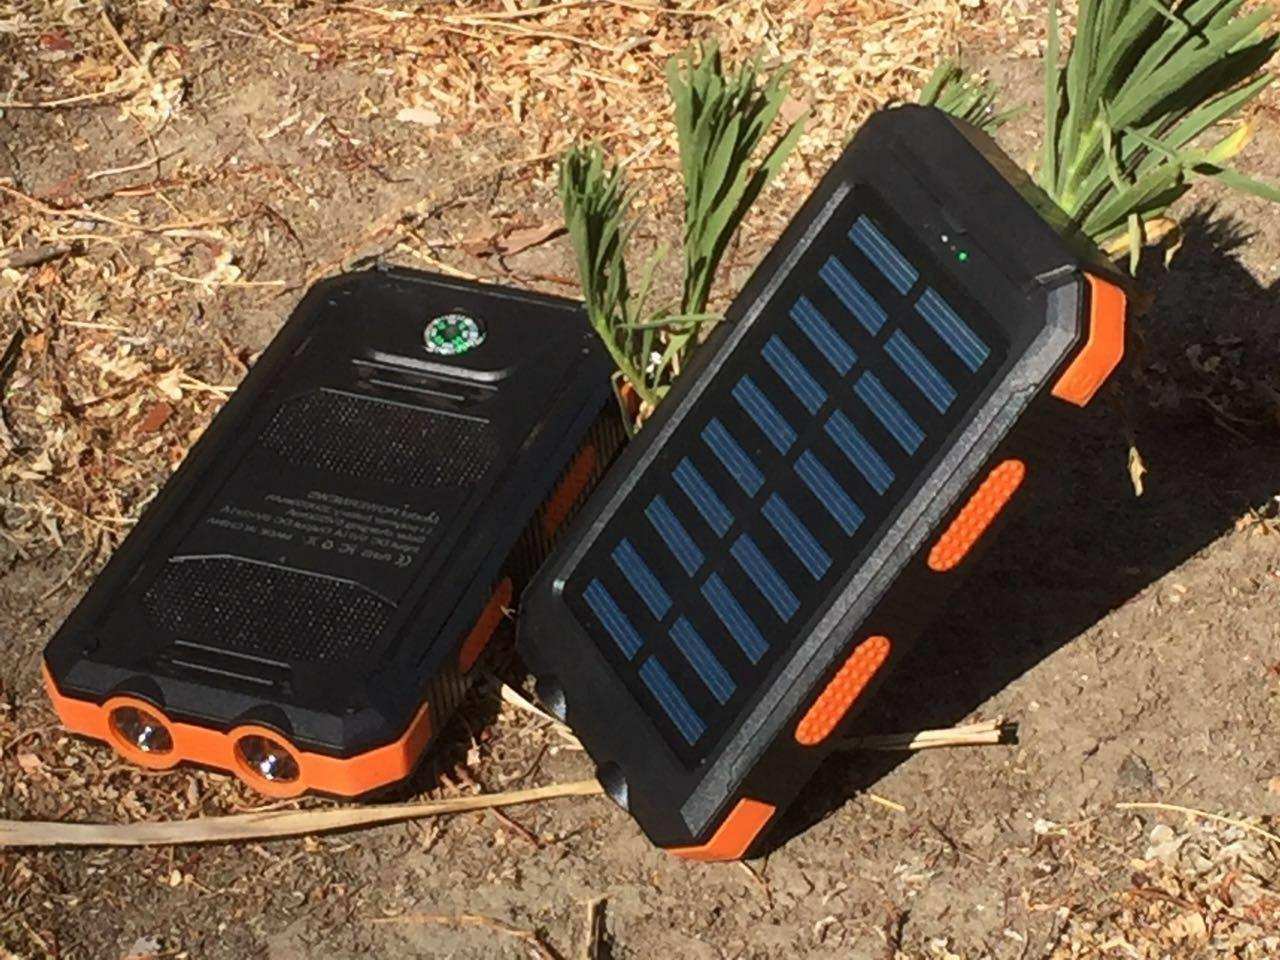 2020 Solar Power Bank Charger